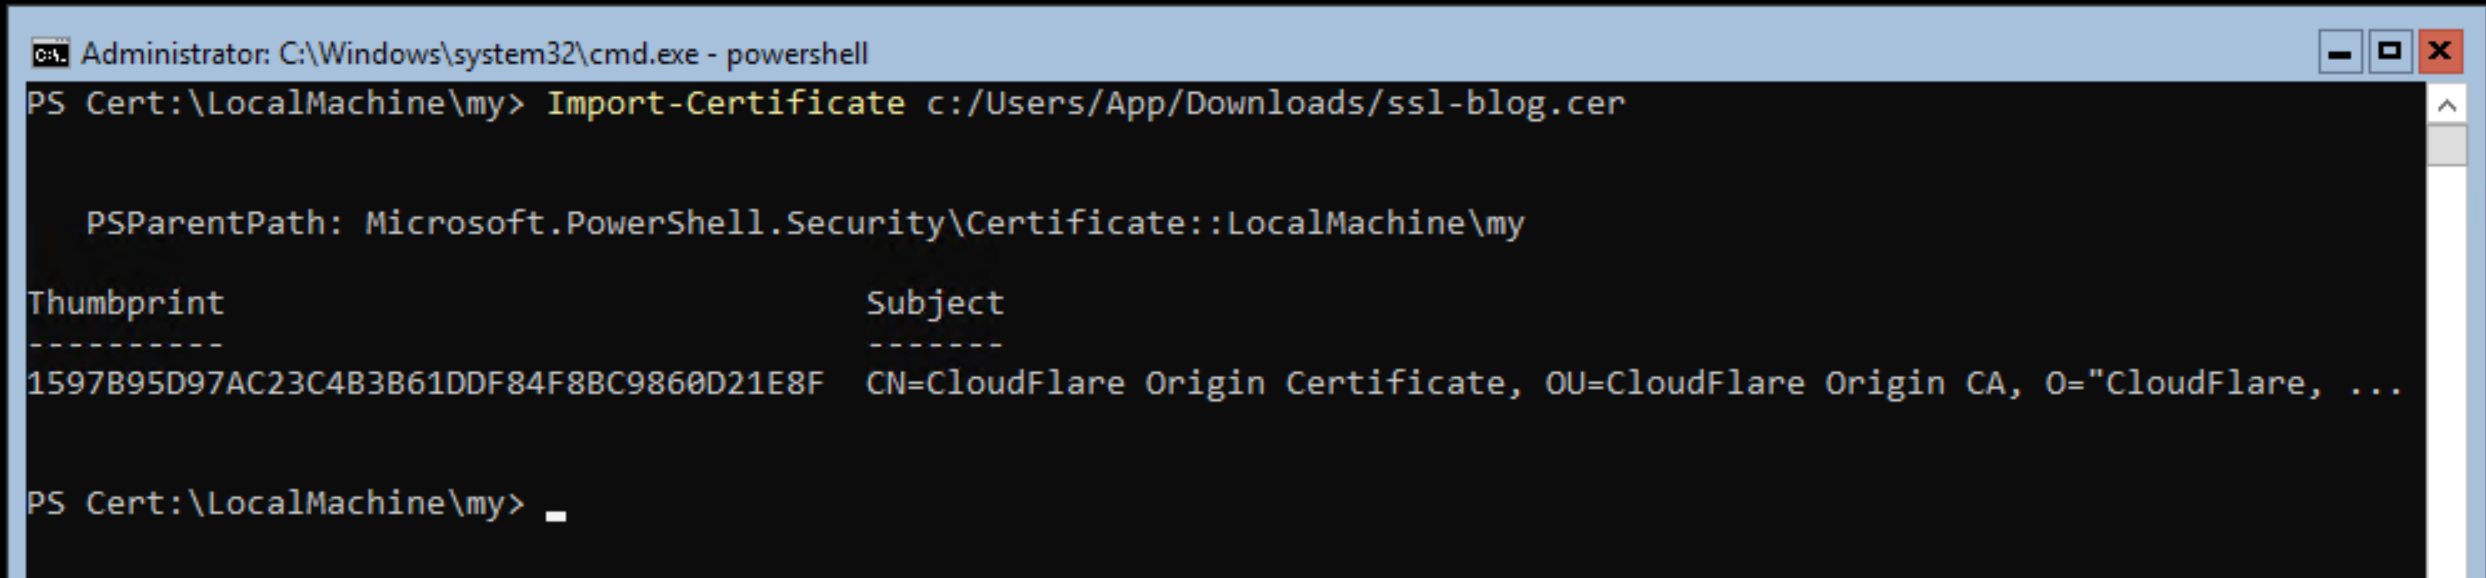 Configuring Cloudflare Ssl Certificates On Windows Server Core With